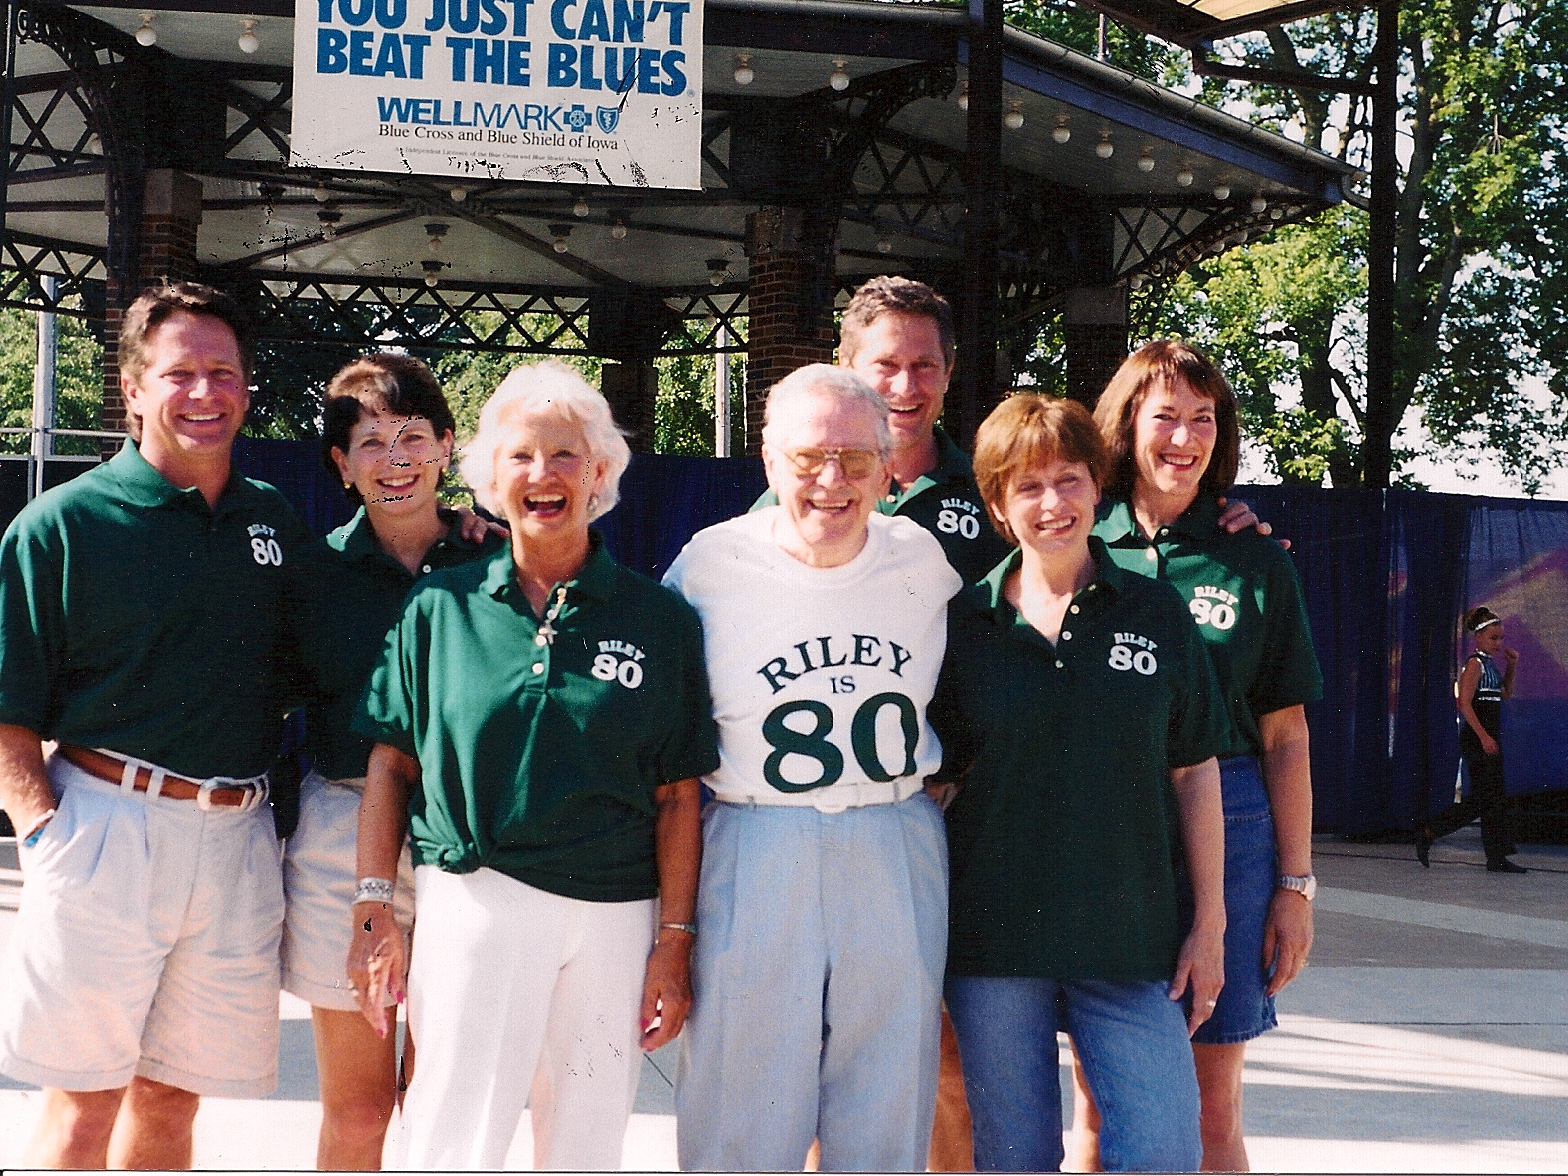 The Riley family including Bill Sr. (white shirt) and Bill Jr. (left). Bill Sr. was a 2004 the Iowa Rock 'n Roll Music Association Hall of Fame inductee and Bill Jr. is a 2019 selection.